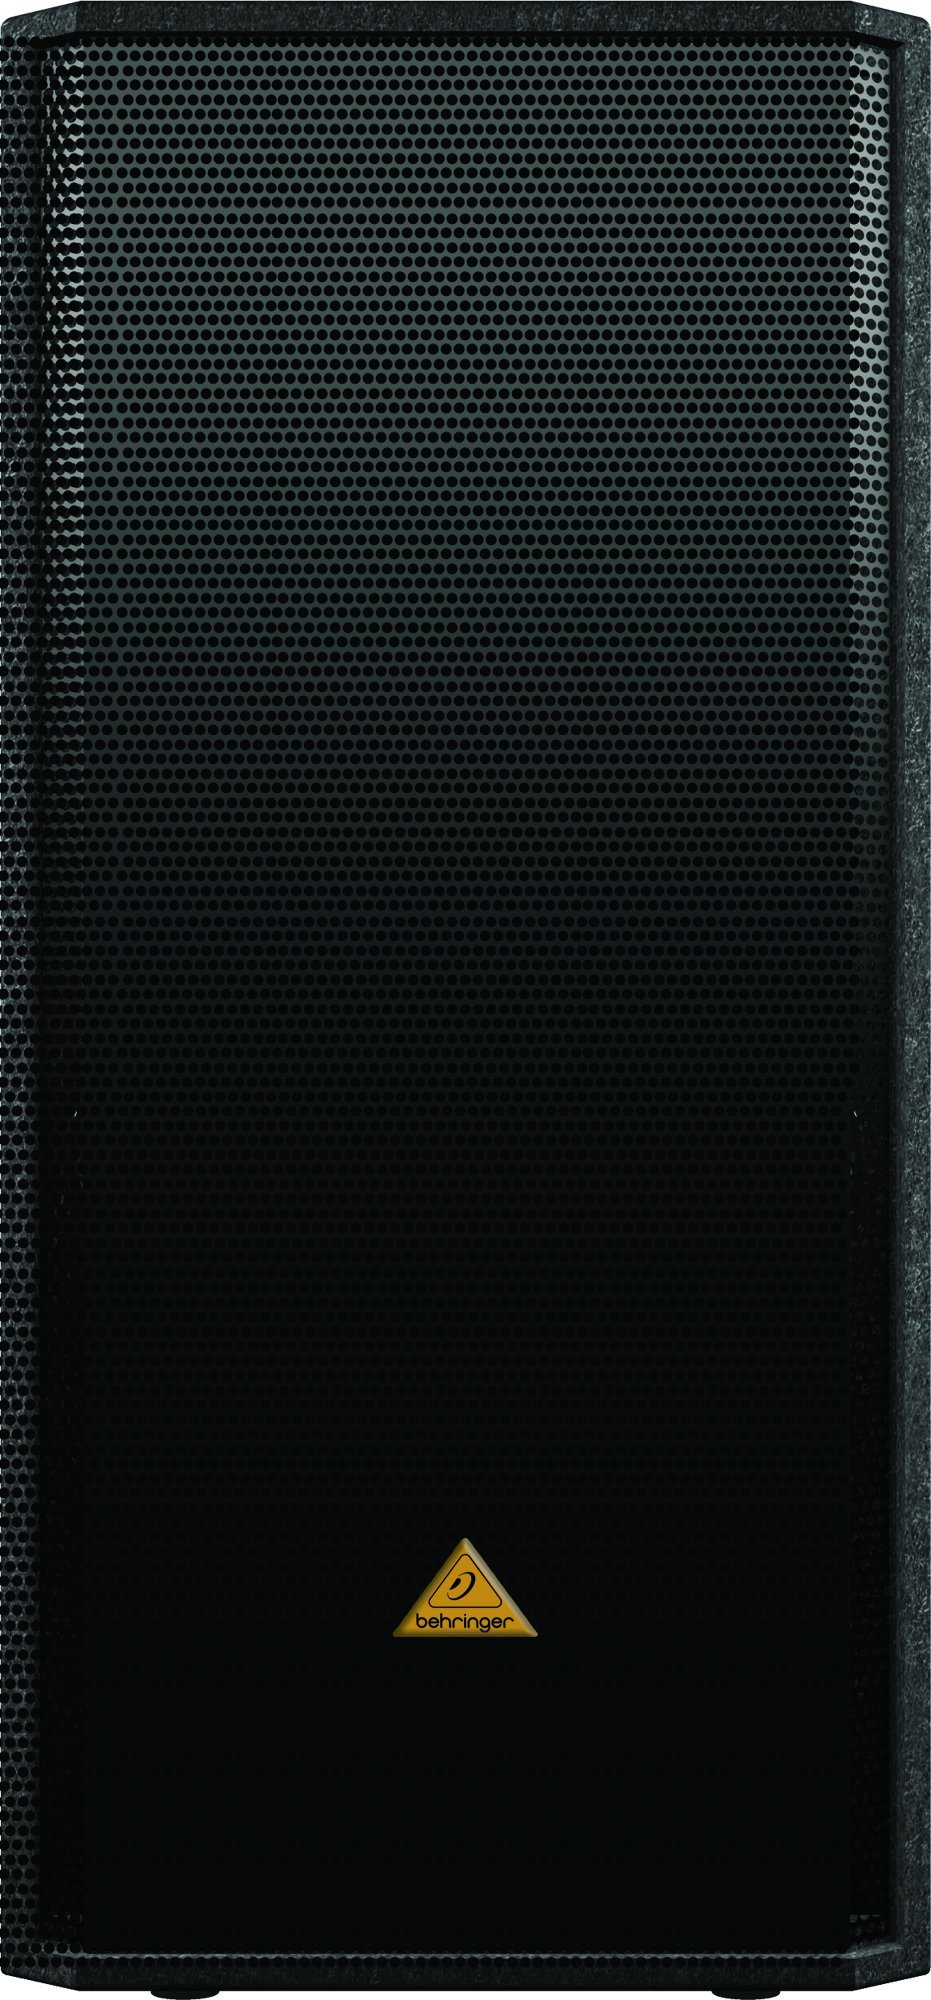 Behringer EUROLIVE Vp2520 Professional 2000-Watt Pa Speaker with Dual 15 Woofers And 1.75 Titanium-Diaphragm Compression Driver by Behringer